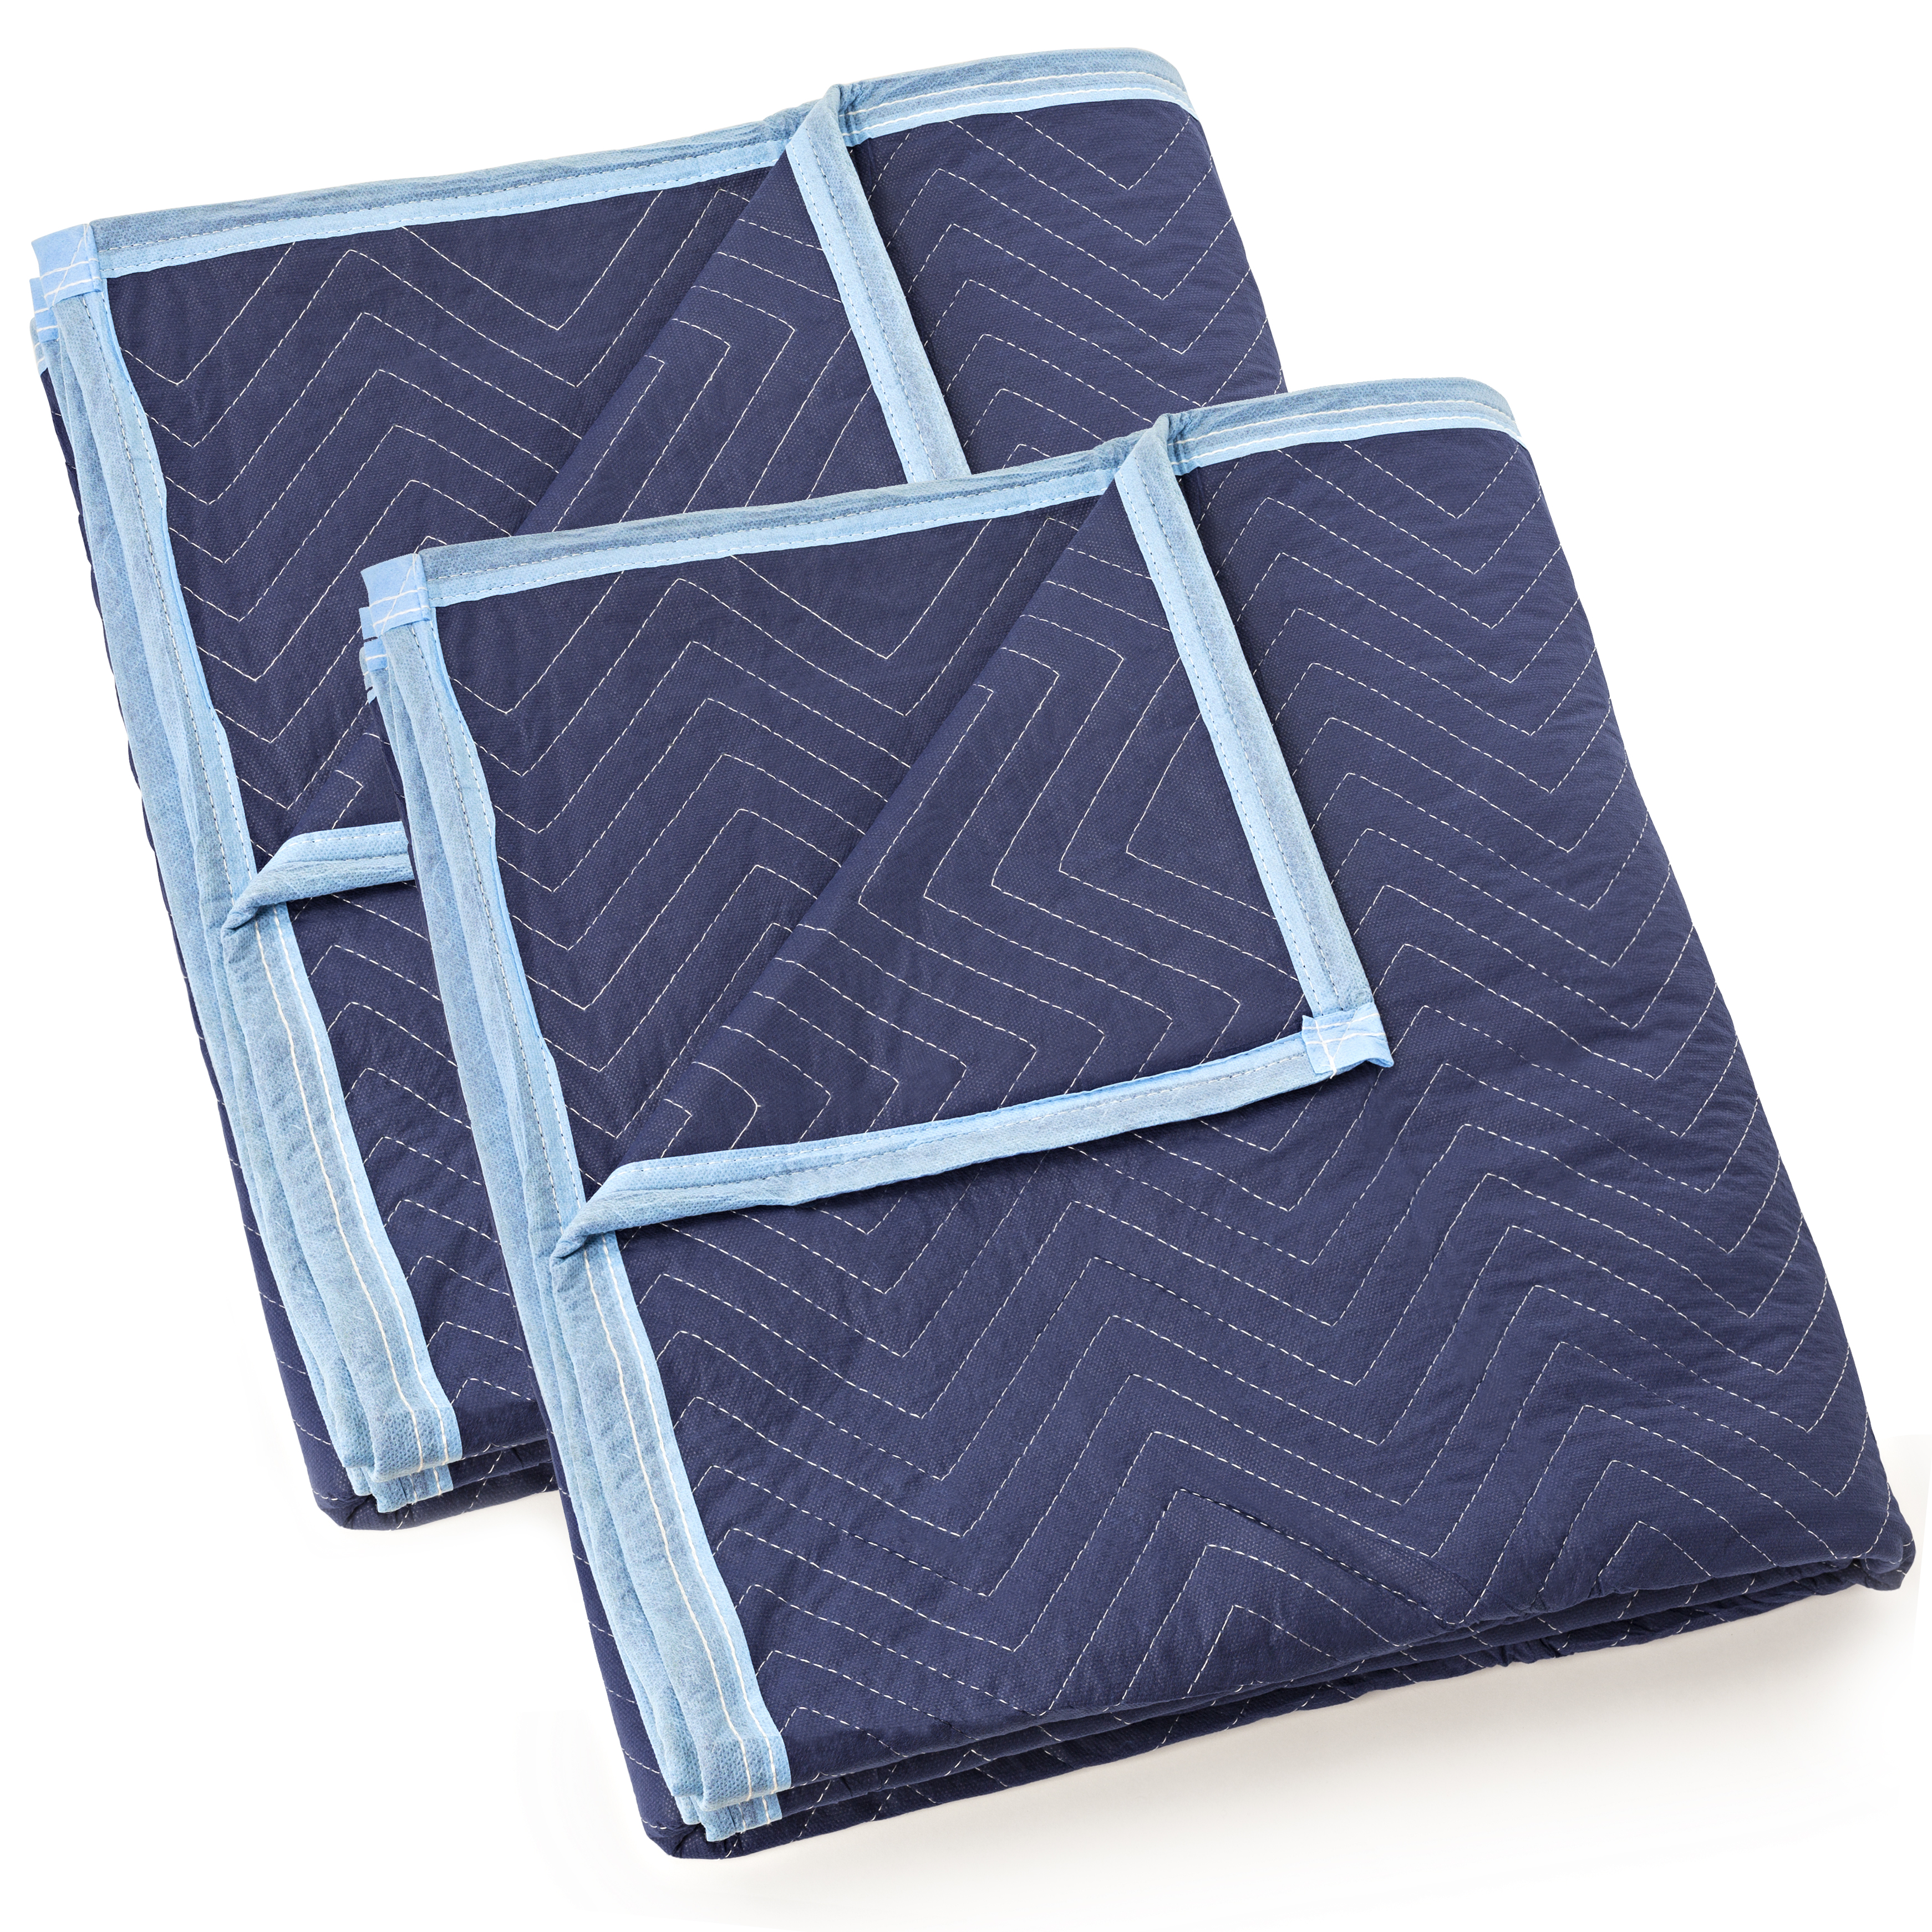 """Sure-Max Moving & Packing Blanket - Deluxe Pro - 80"""" x 72"""" (40 lb/dz weight) - Professional Quilted Shipping Furniture Pad Royal Blue"""